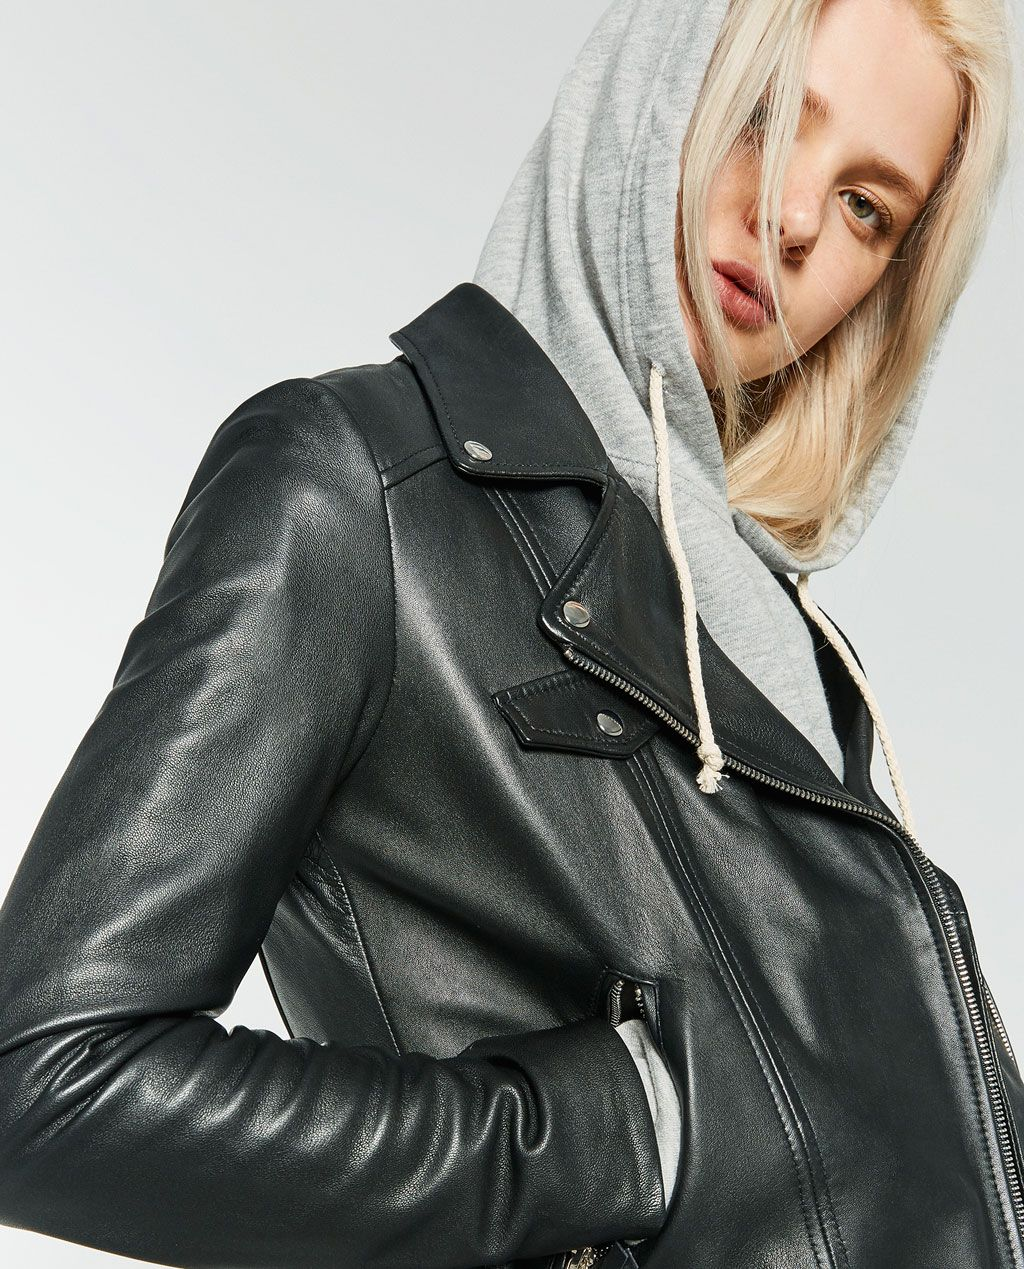 BASIC LEATHER JACKETOUTERWEARWOMANCOLLECTION AW16